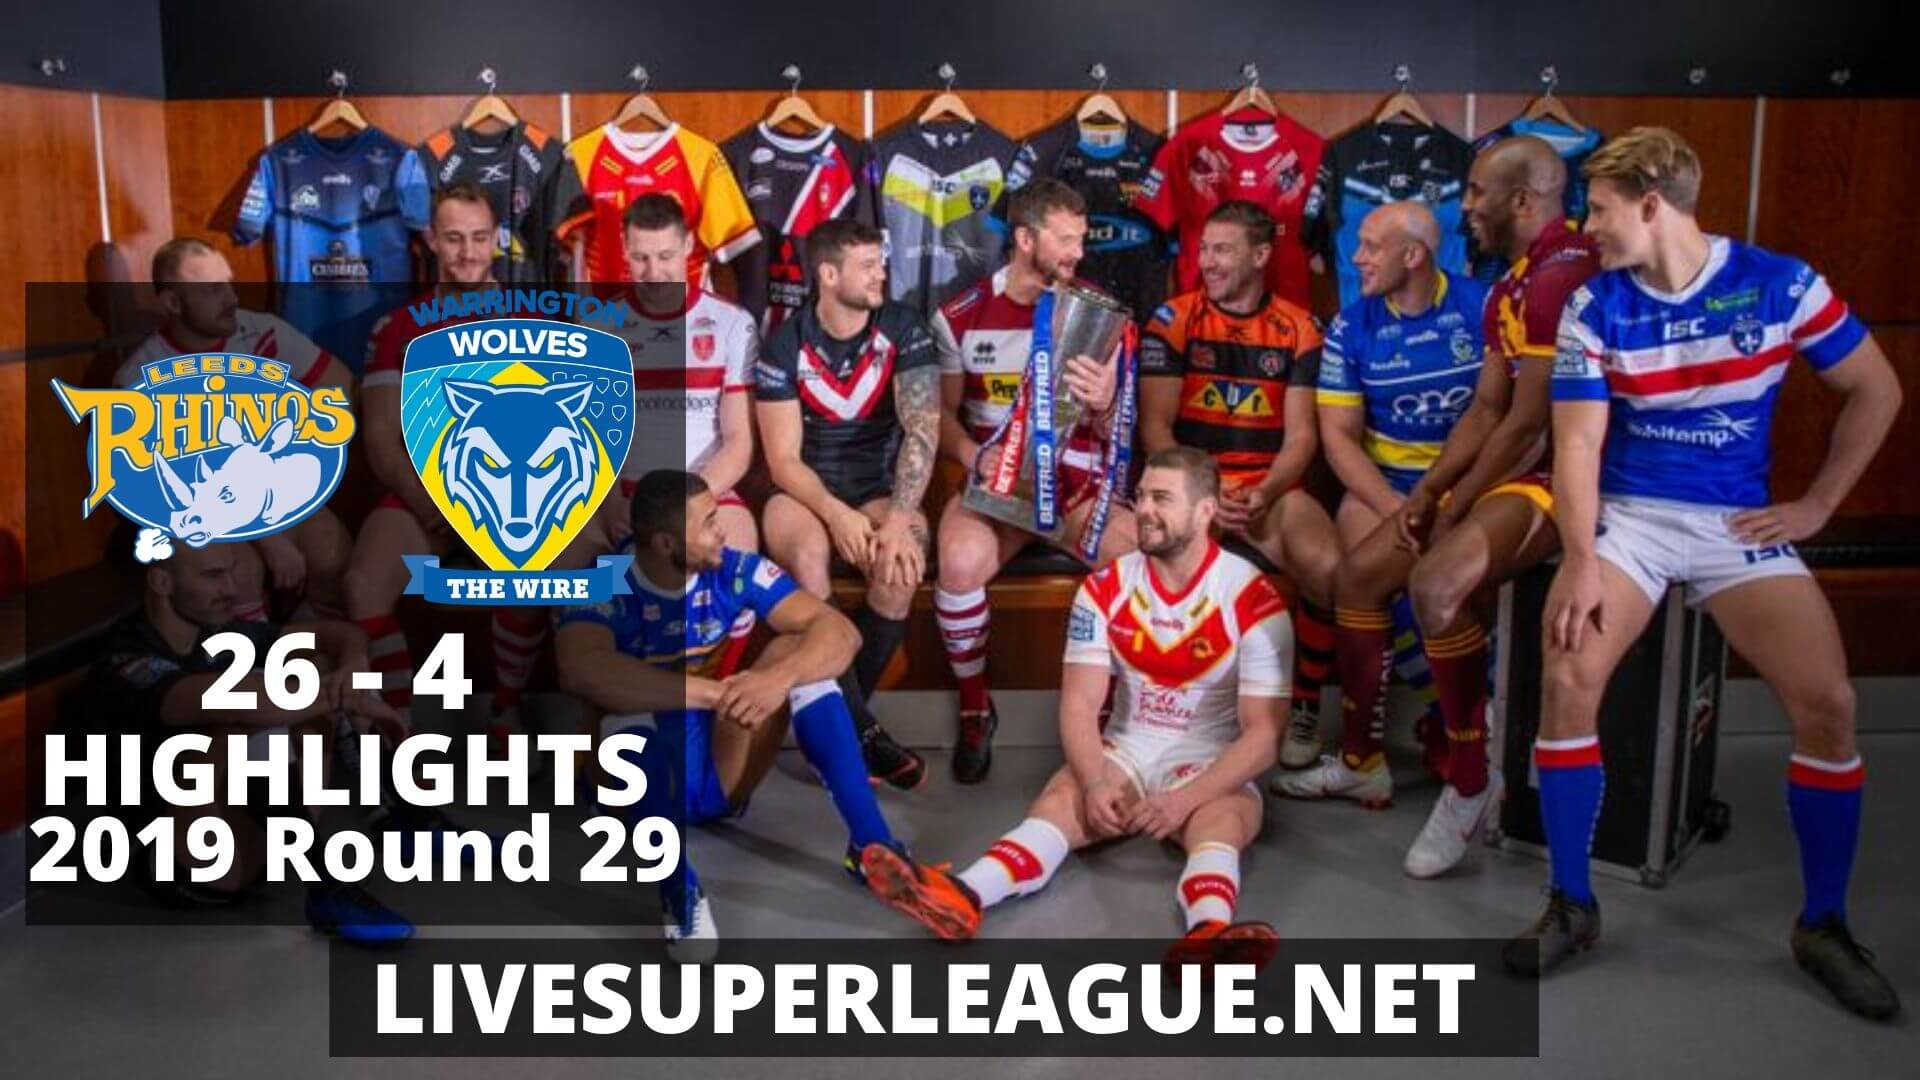 Leeds Rhinos Vs Warrington Wolves Highlights 2019 Round 29